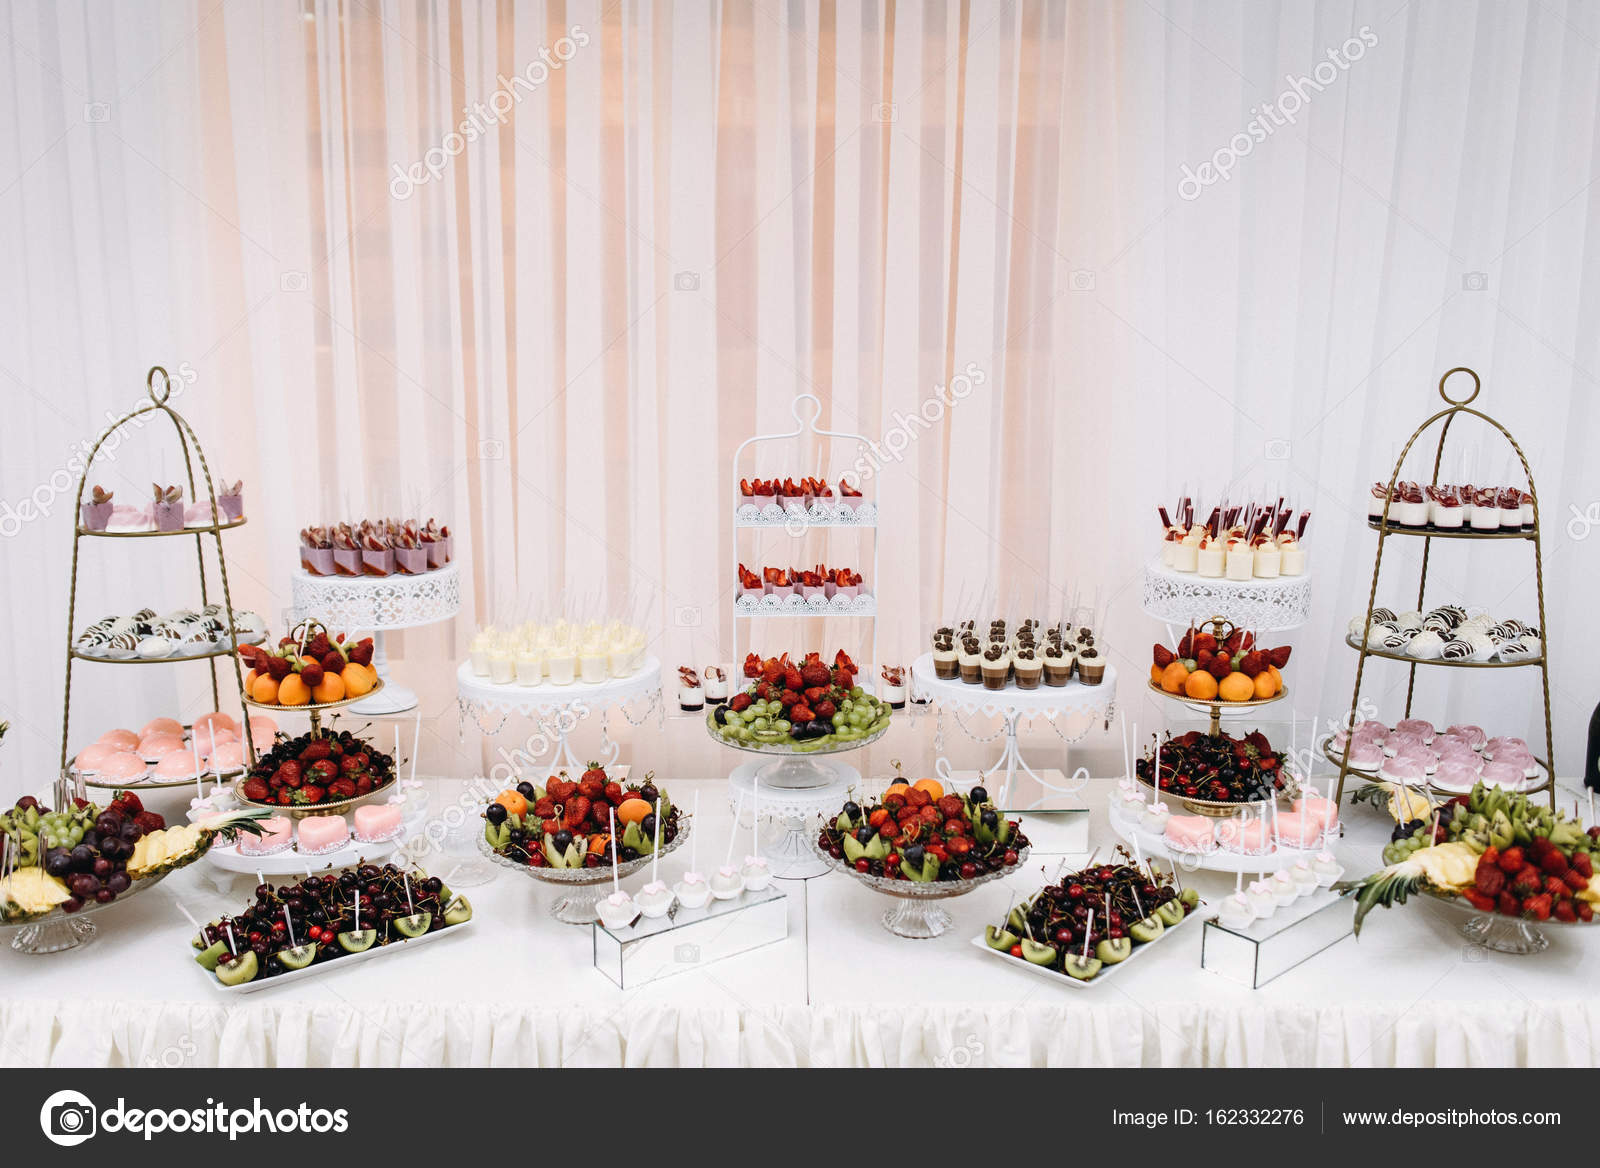 BANQUET Sweet Table With Desserts Delicious Wedding Reception Candy Bar Photo By Bondart